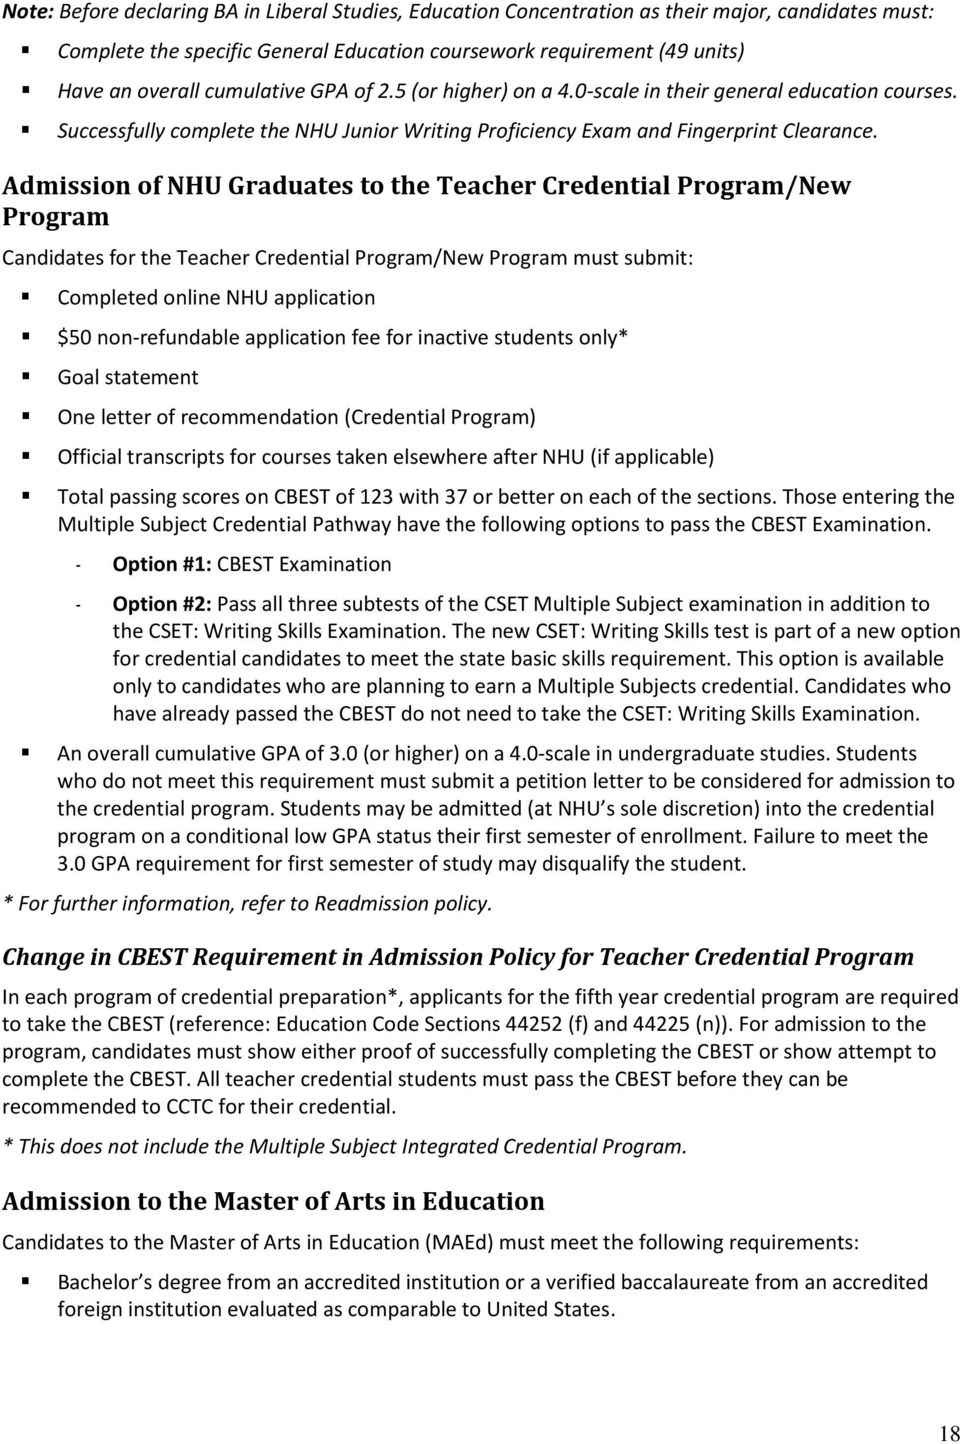 Admission of NHU Graduates to the Teacher Credential Program/New Program Candidates for the Teacher Credential Program/New Program must submit: Completed online NHU application $50 non-refundable